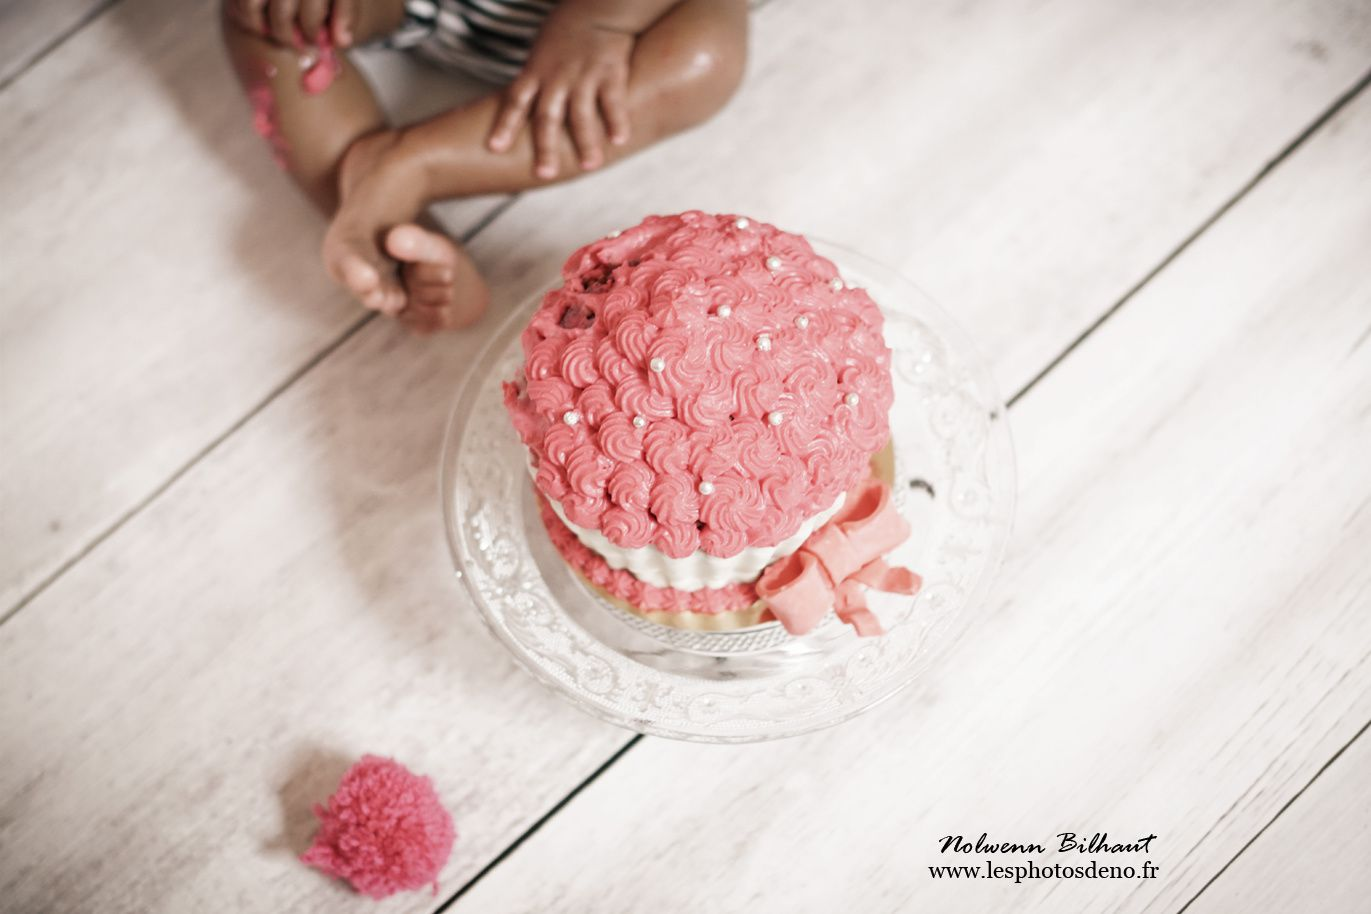 Smash the cake de Kiara, au studio de Nolwenn Bilhaut photographe